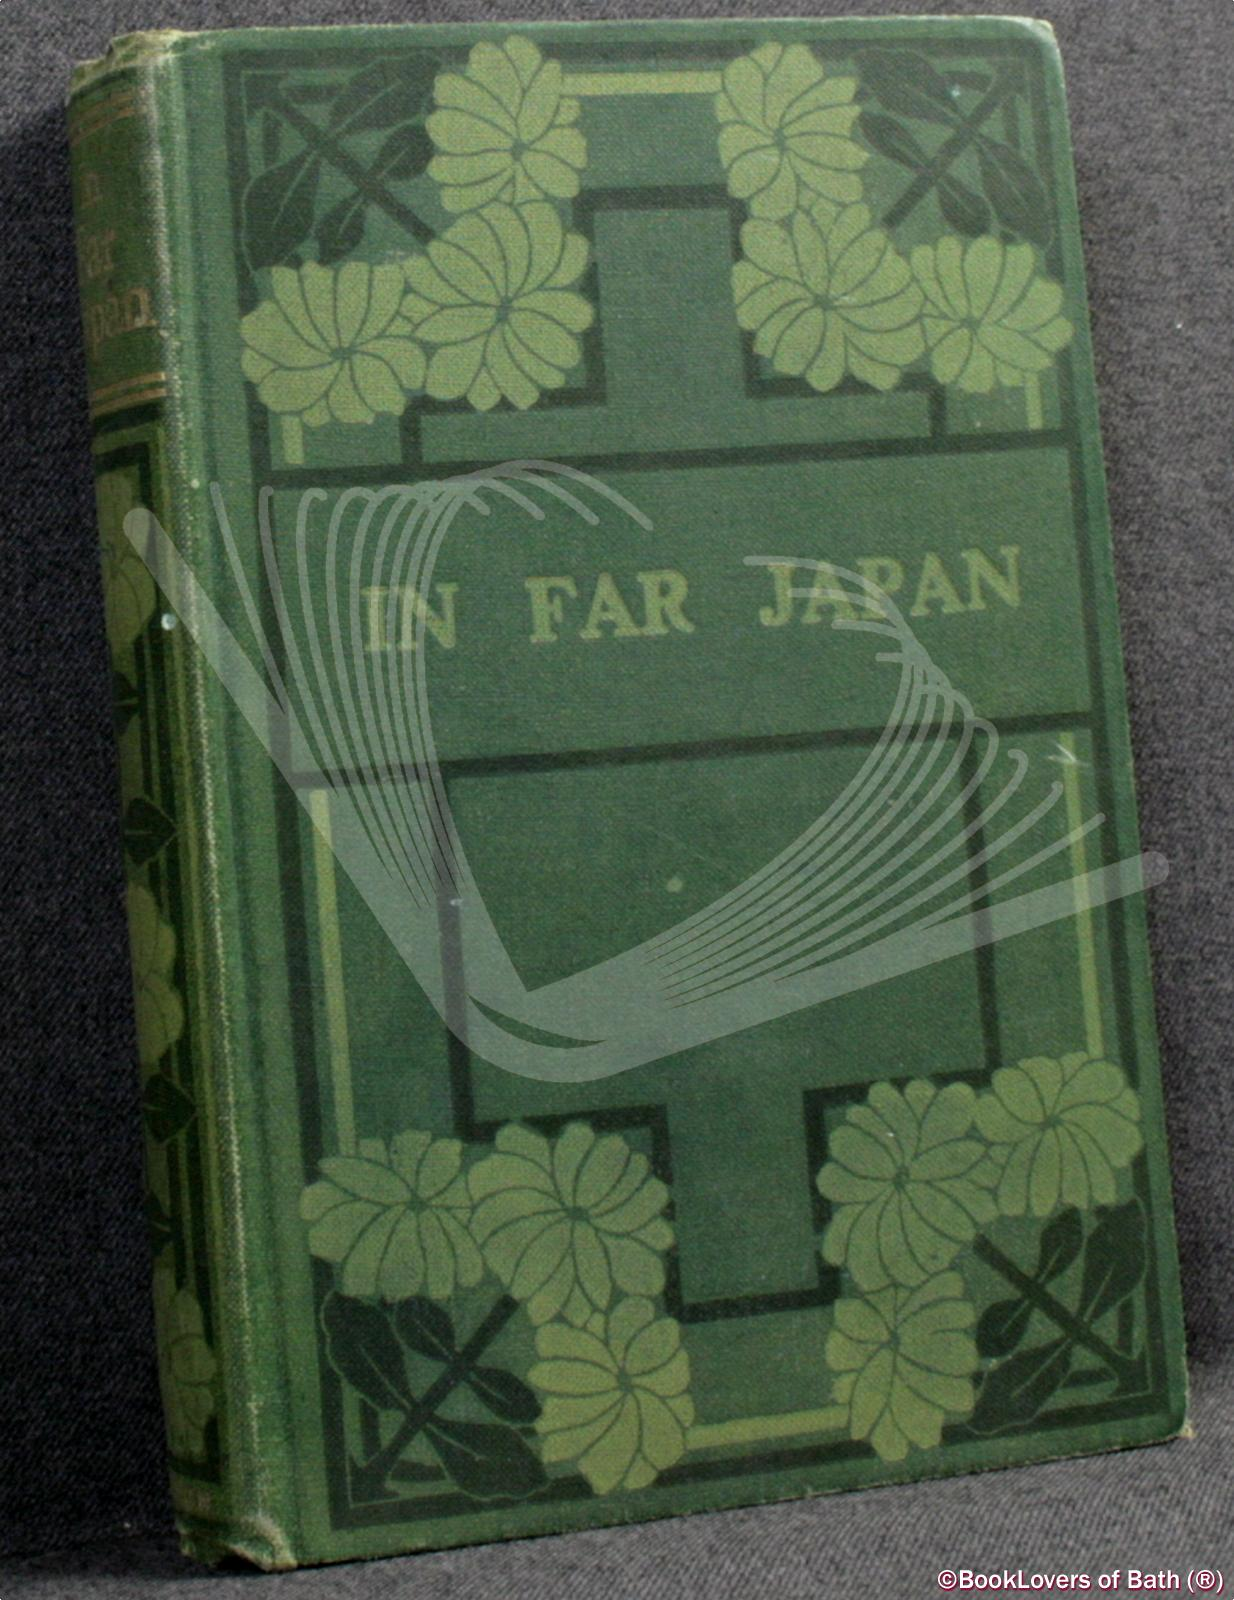 in Far Japan: A Story of English Children - Mrs. Isla Sitwell